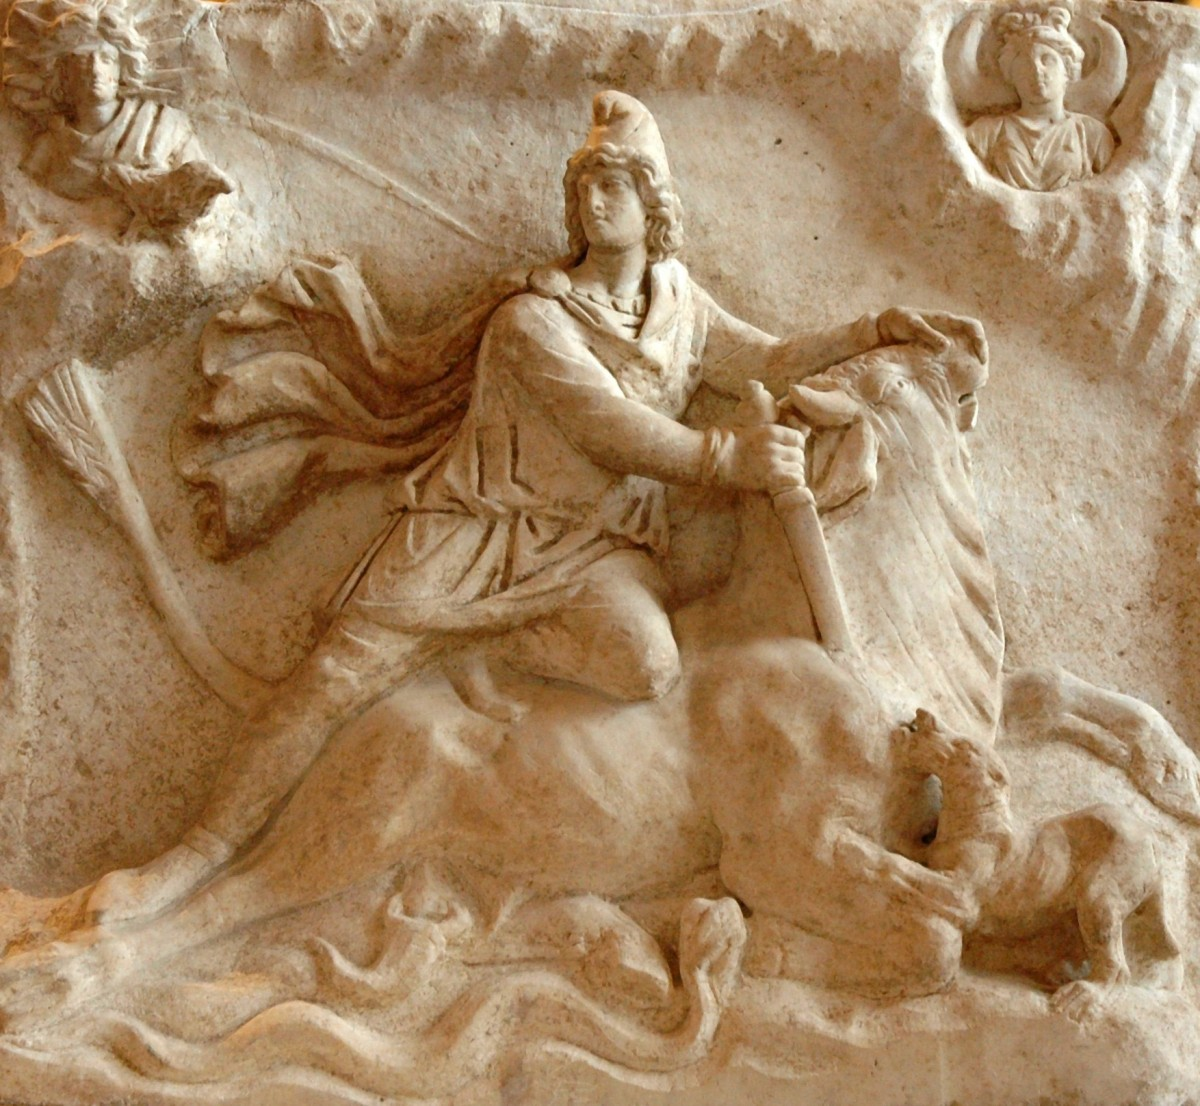 Mithras killing the bull. Relief at the Louvre, 2nd-3rd century AD.